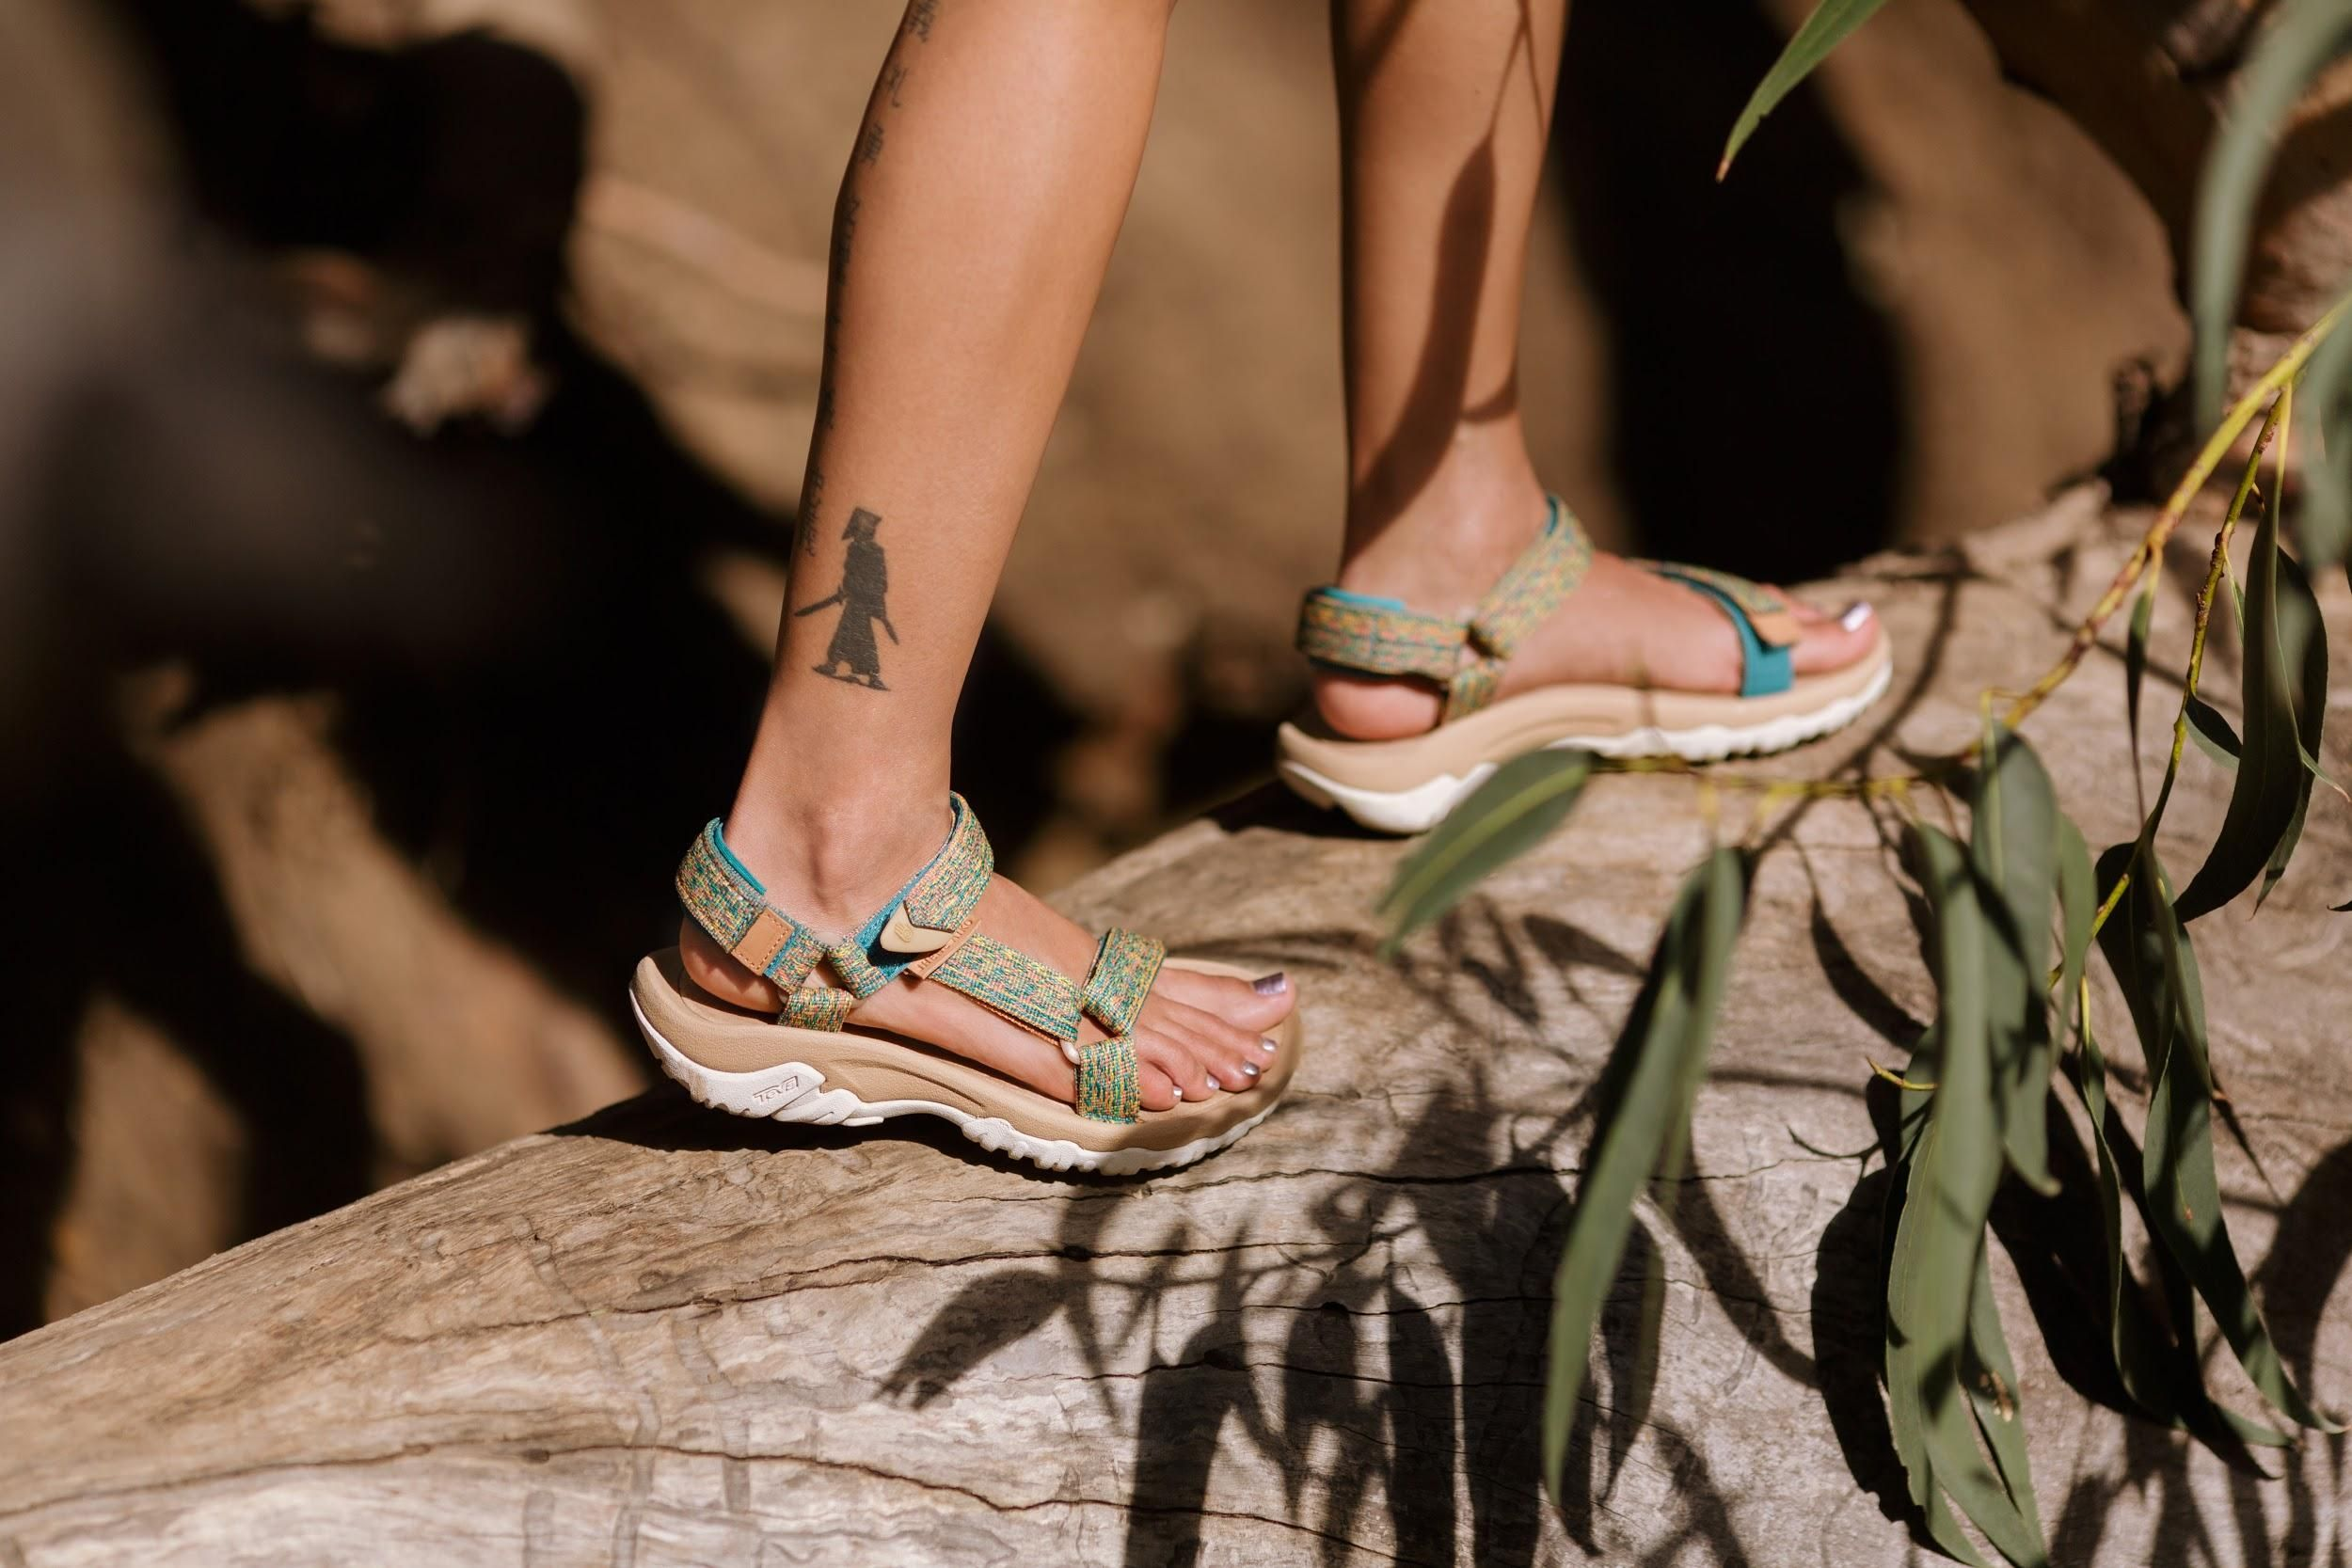 When Jhene Aiko Was In Need Of A Functional Yet Fashionable Sandal In Hawaii She Discovered Teva And Fell In Love With Th Sandal Fashion Jhene Aiko Dream Shoes